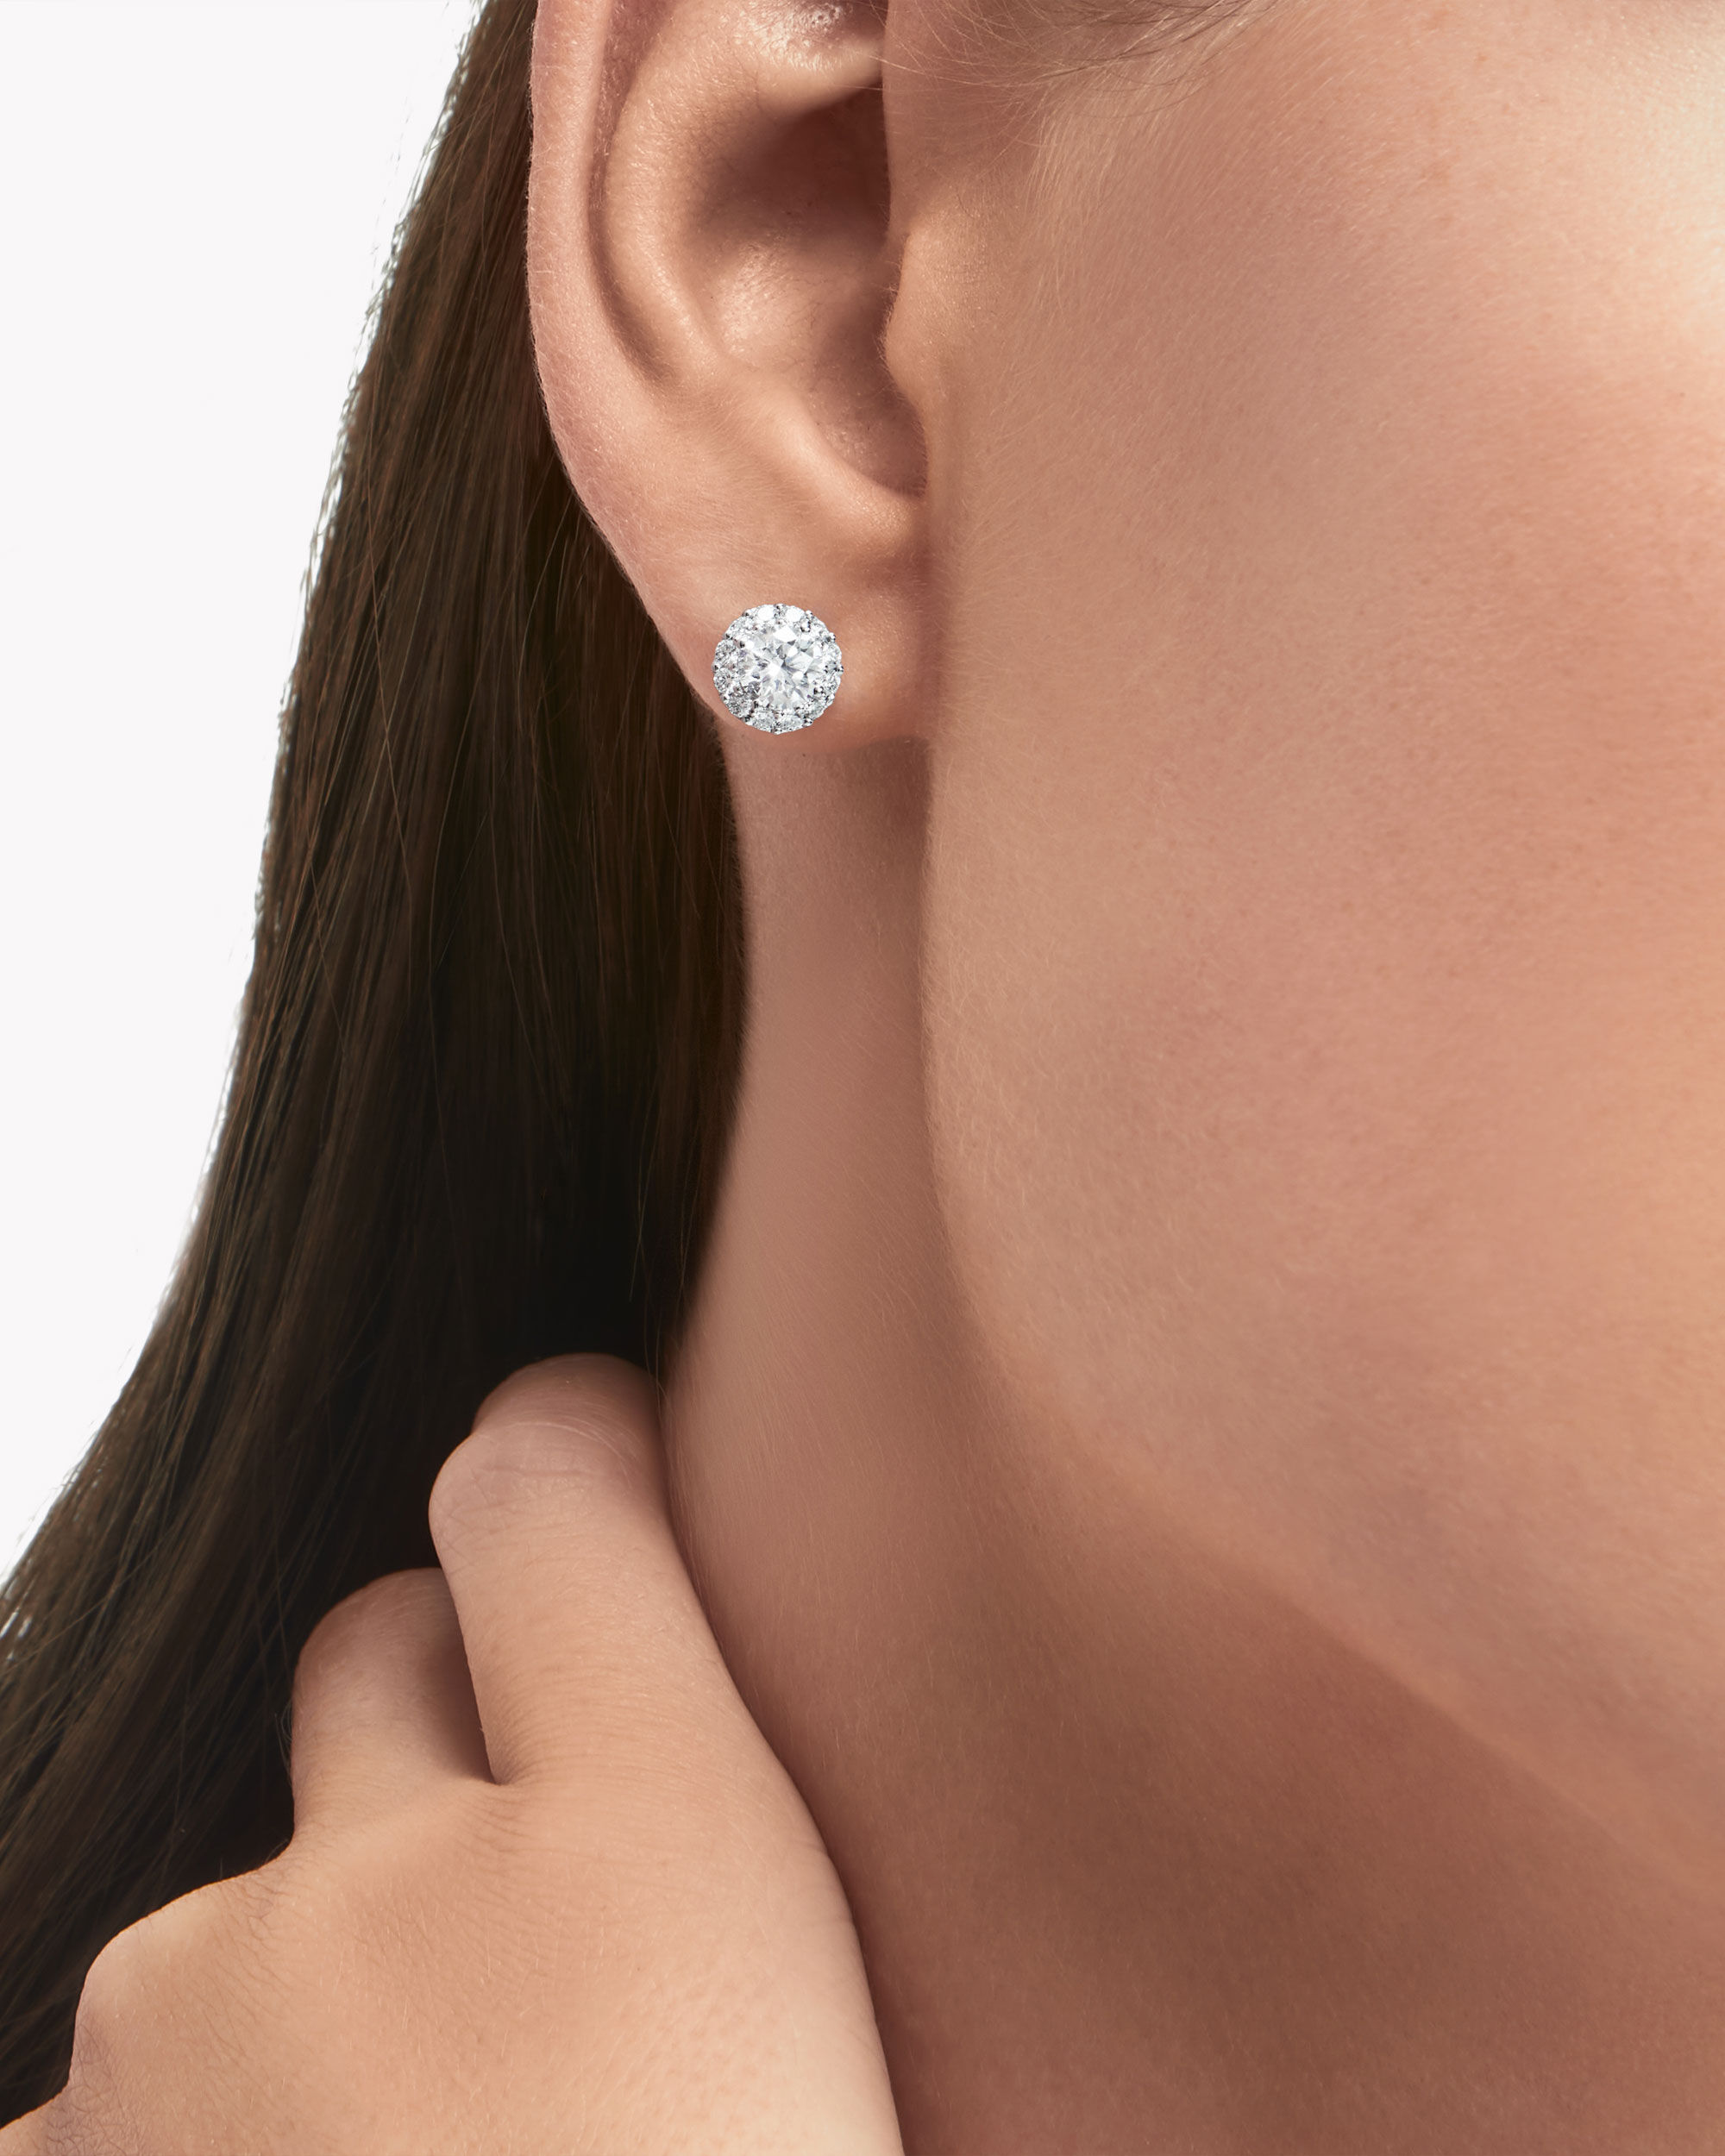 Model wears the Graff jewellery collection diamond earrings